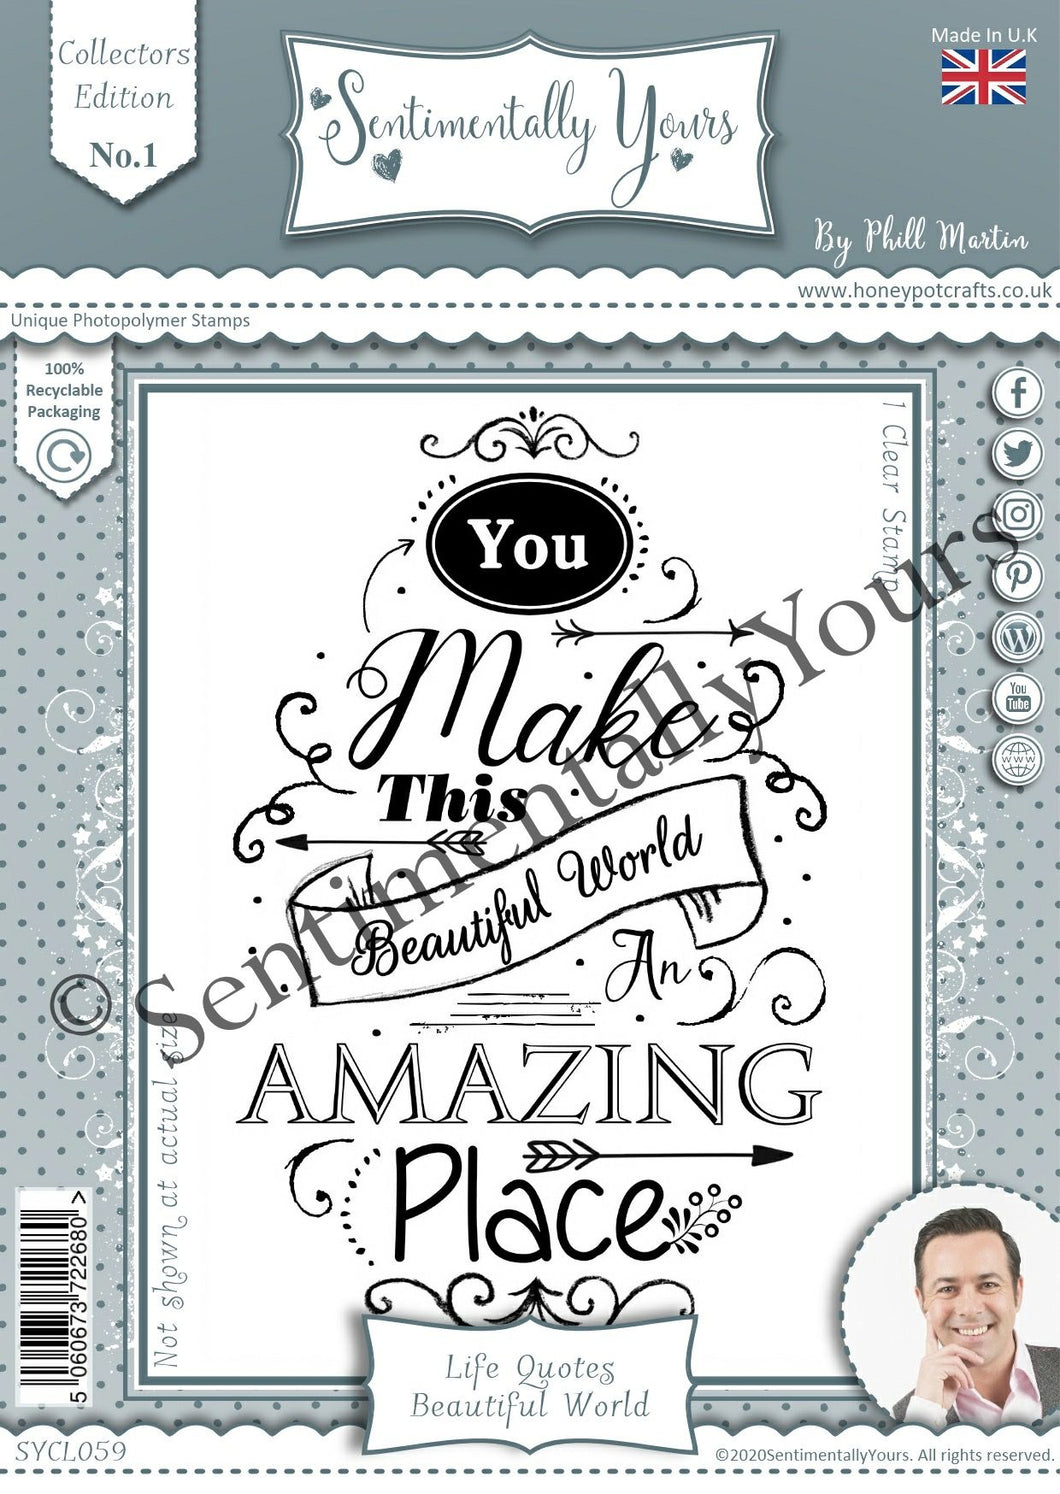 Phill Martin Sentimentally Yours A6 Collection Edition - Life Quotes : Beautiful World